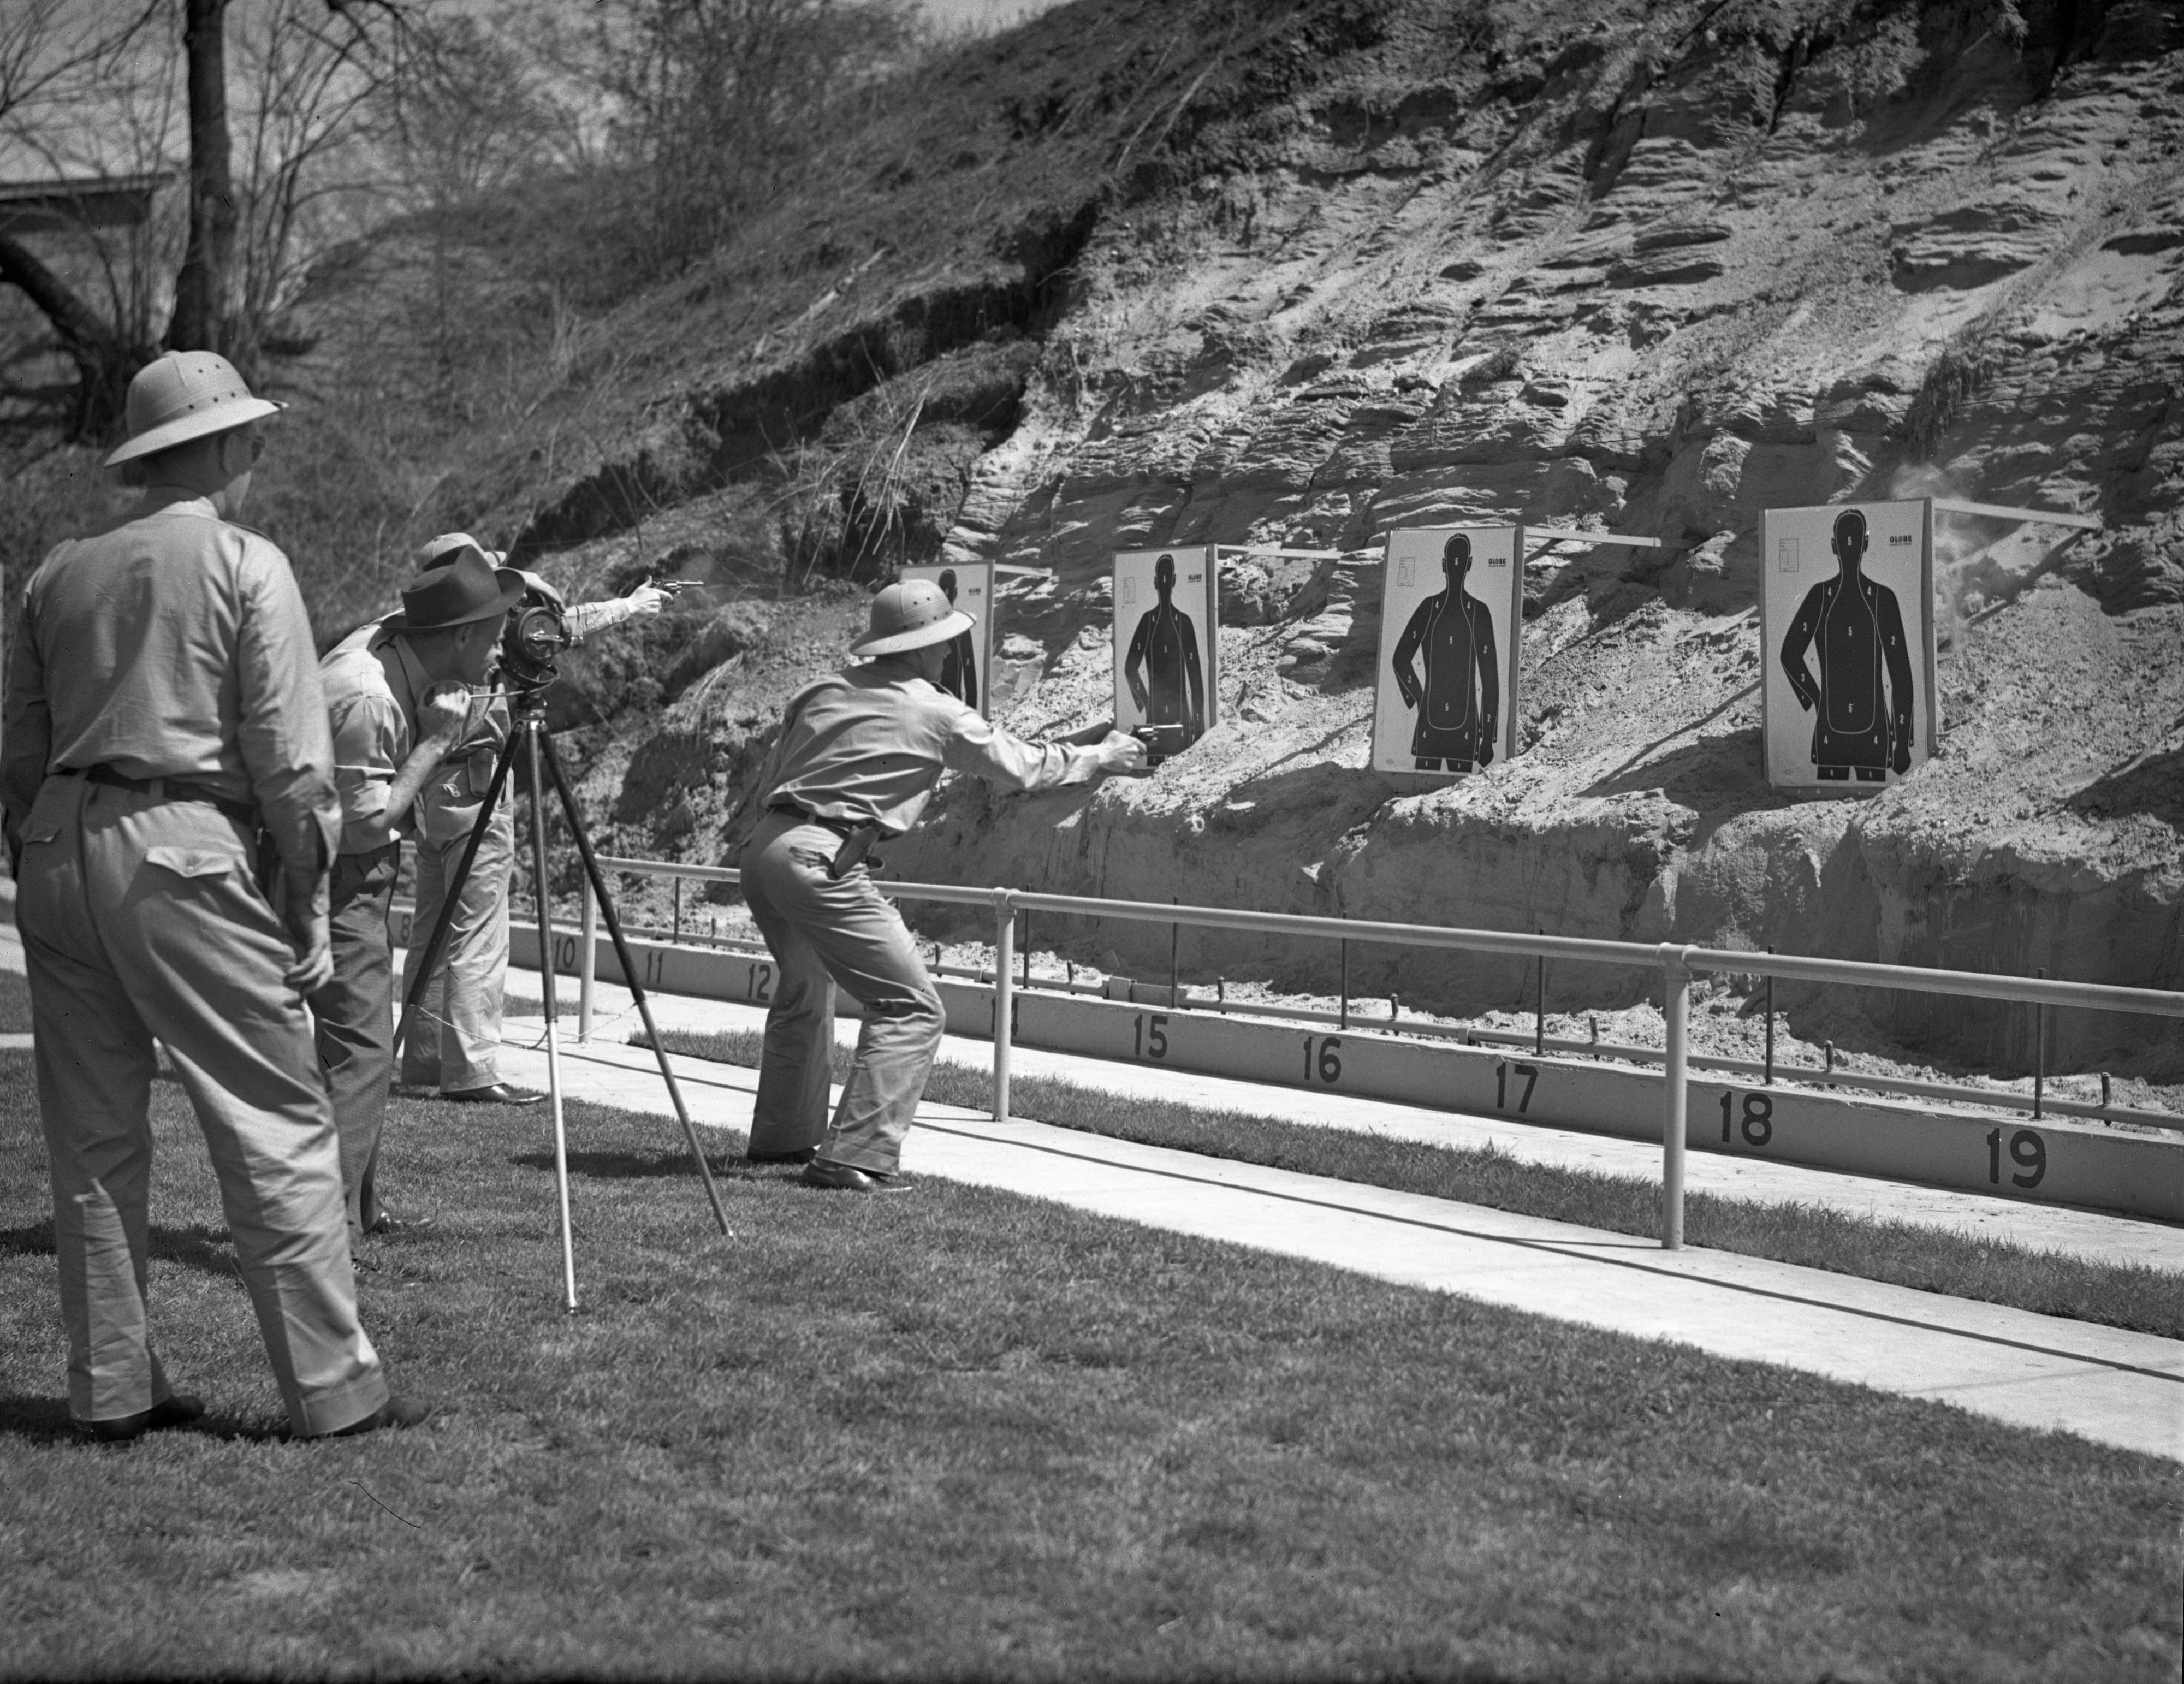 A Camera Operator For The FBI Films An Officer Shooting A Target At The Ann Arbor Police Pistol Range, May 1943 image